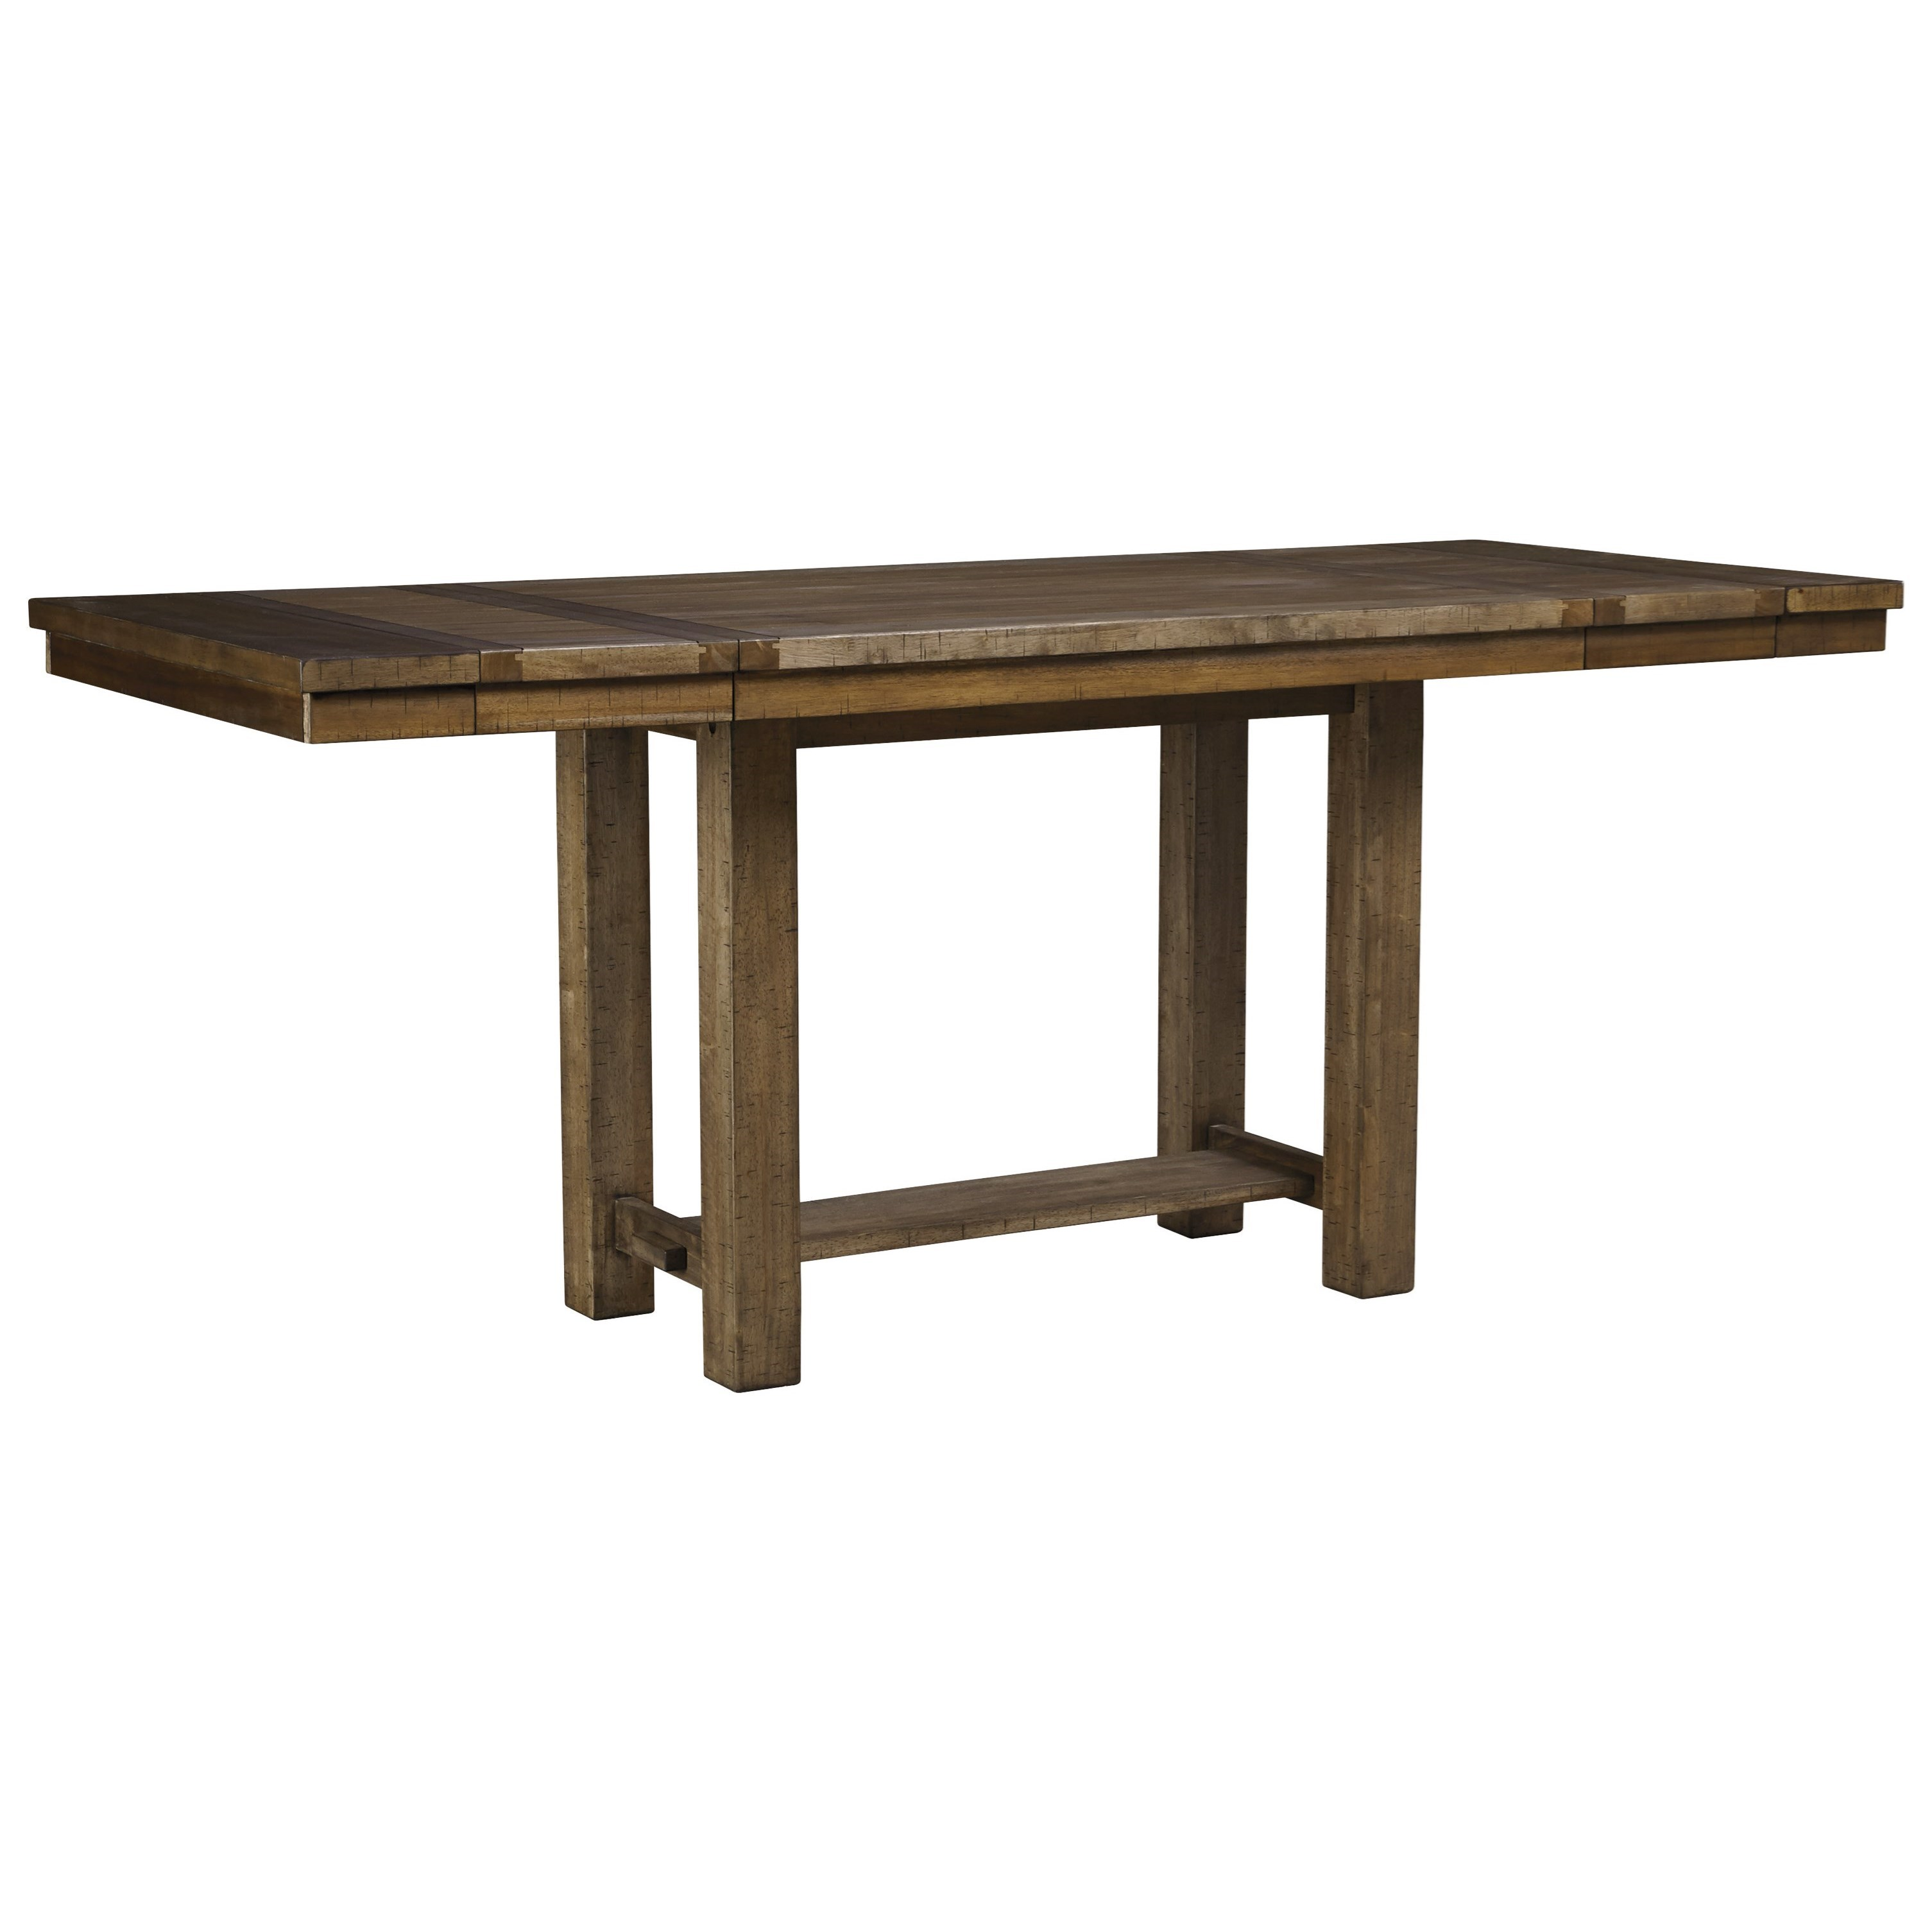 Moriville Rect. Dining Room Counter Extension Table by Signature Design by Ashley at Godby Home Furnishings